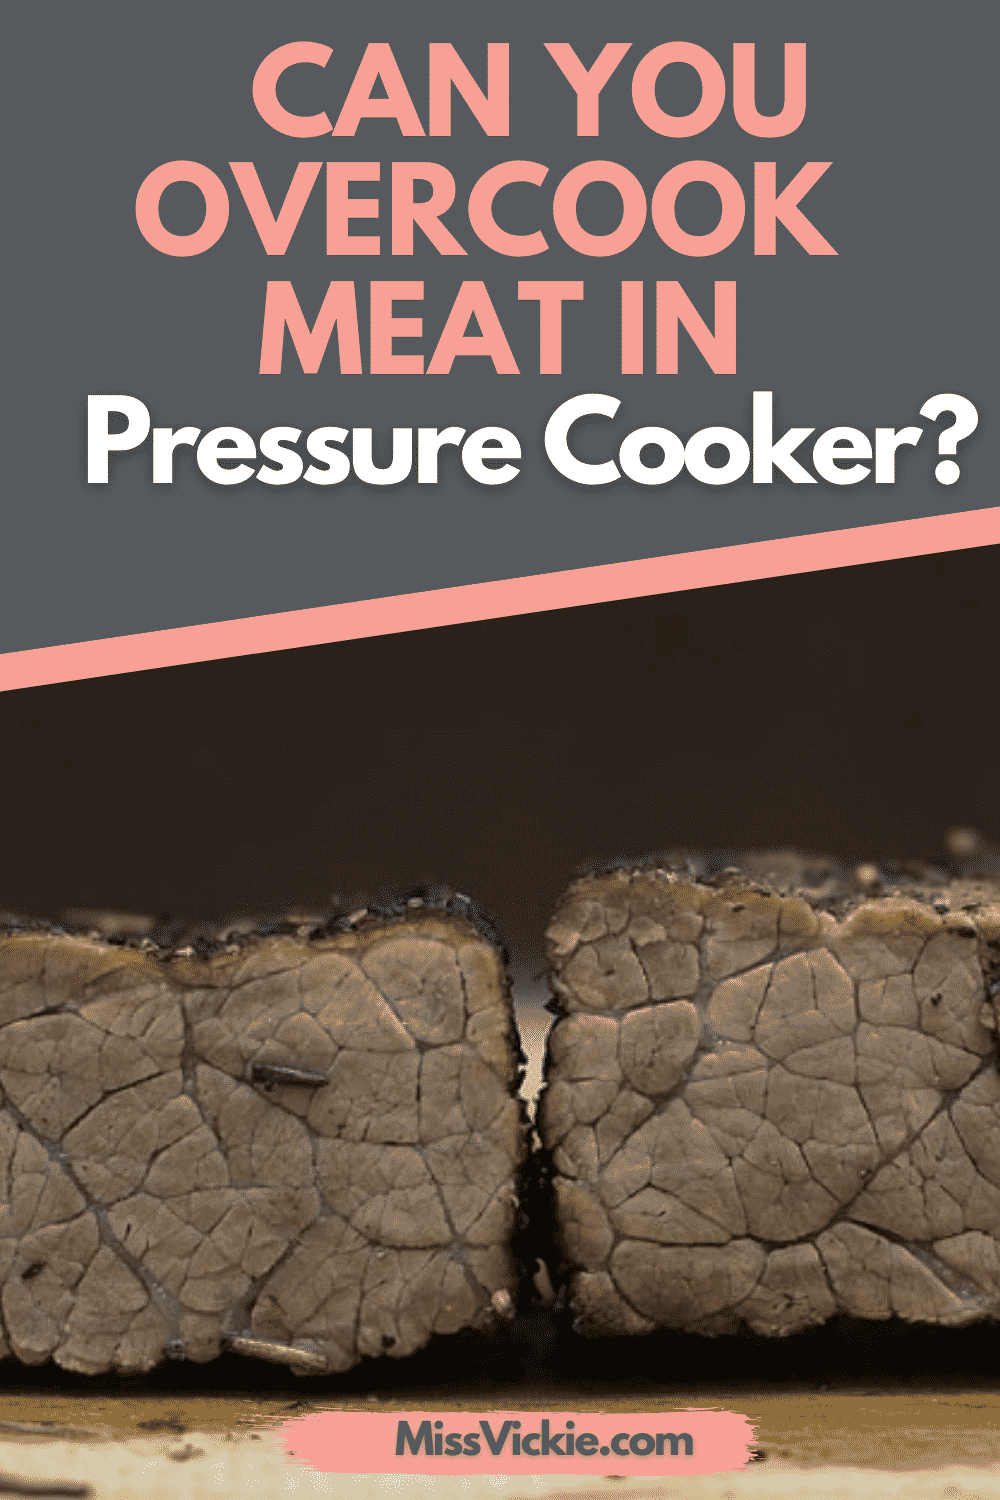 Can You Overcook Meat In Pressure Cooker